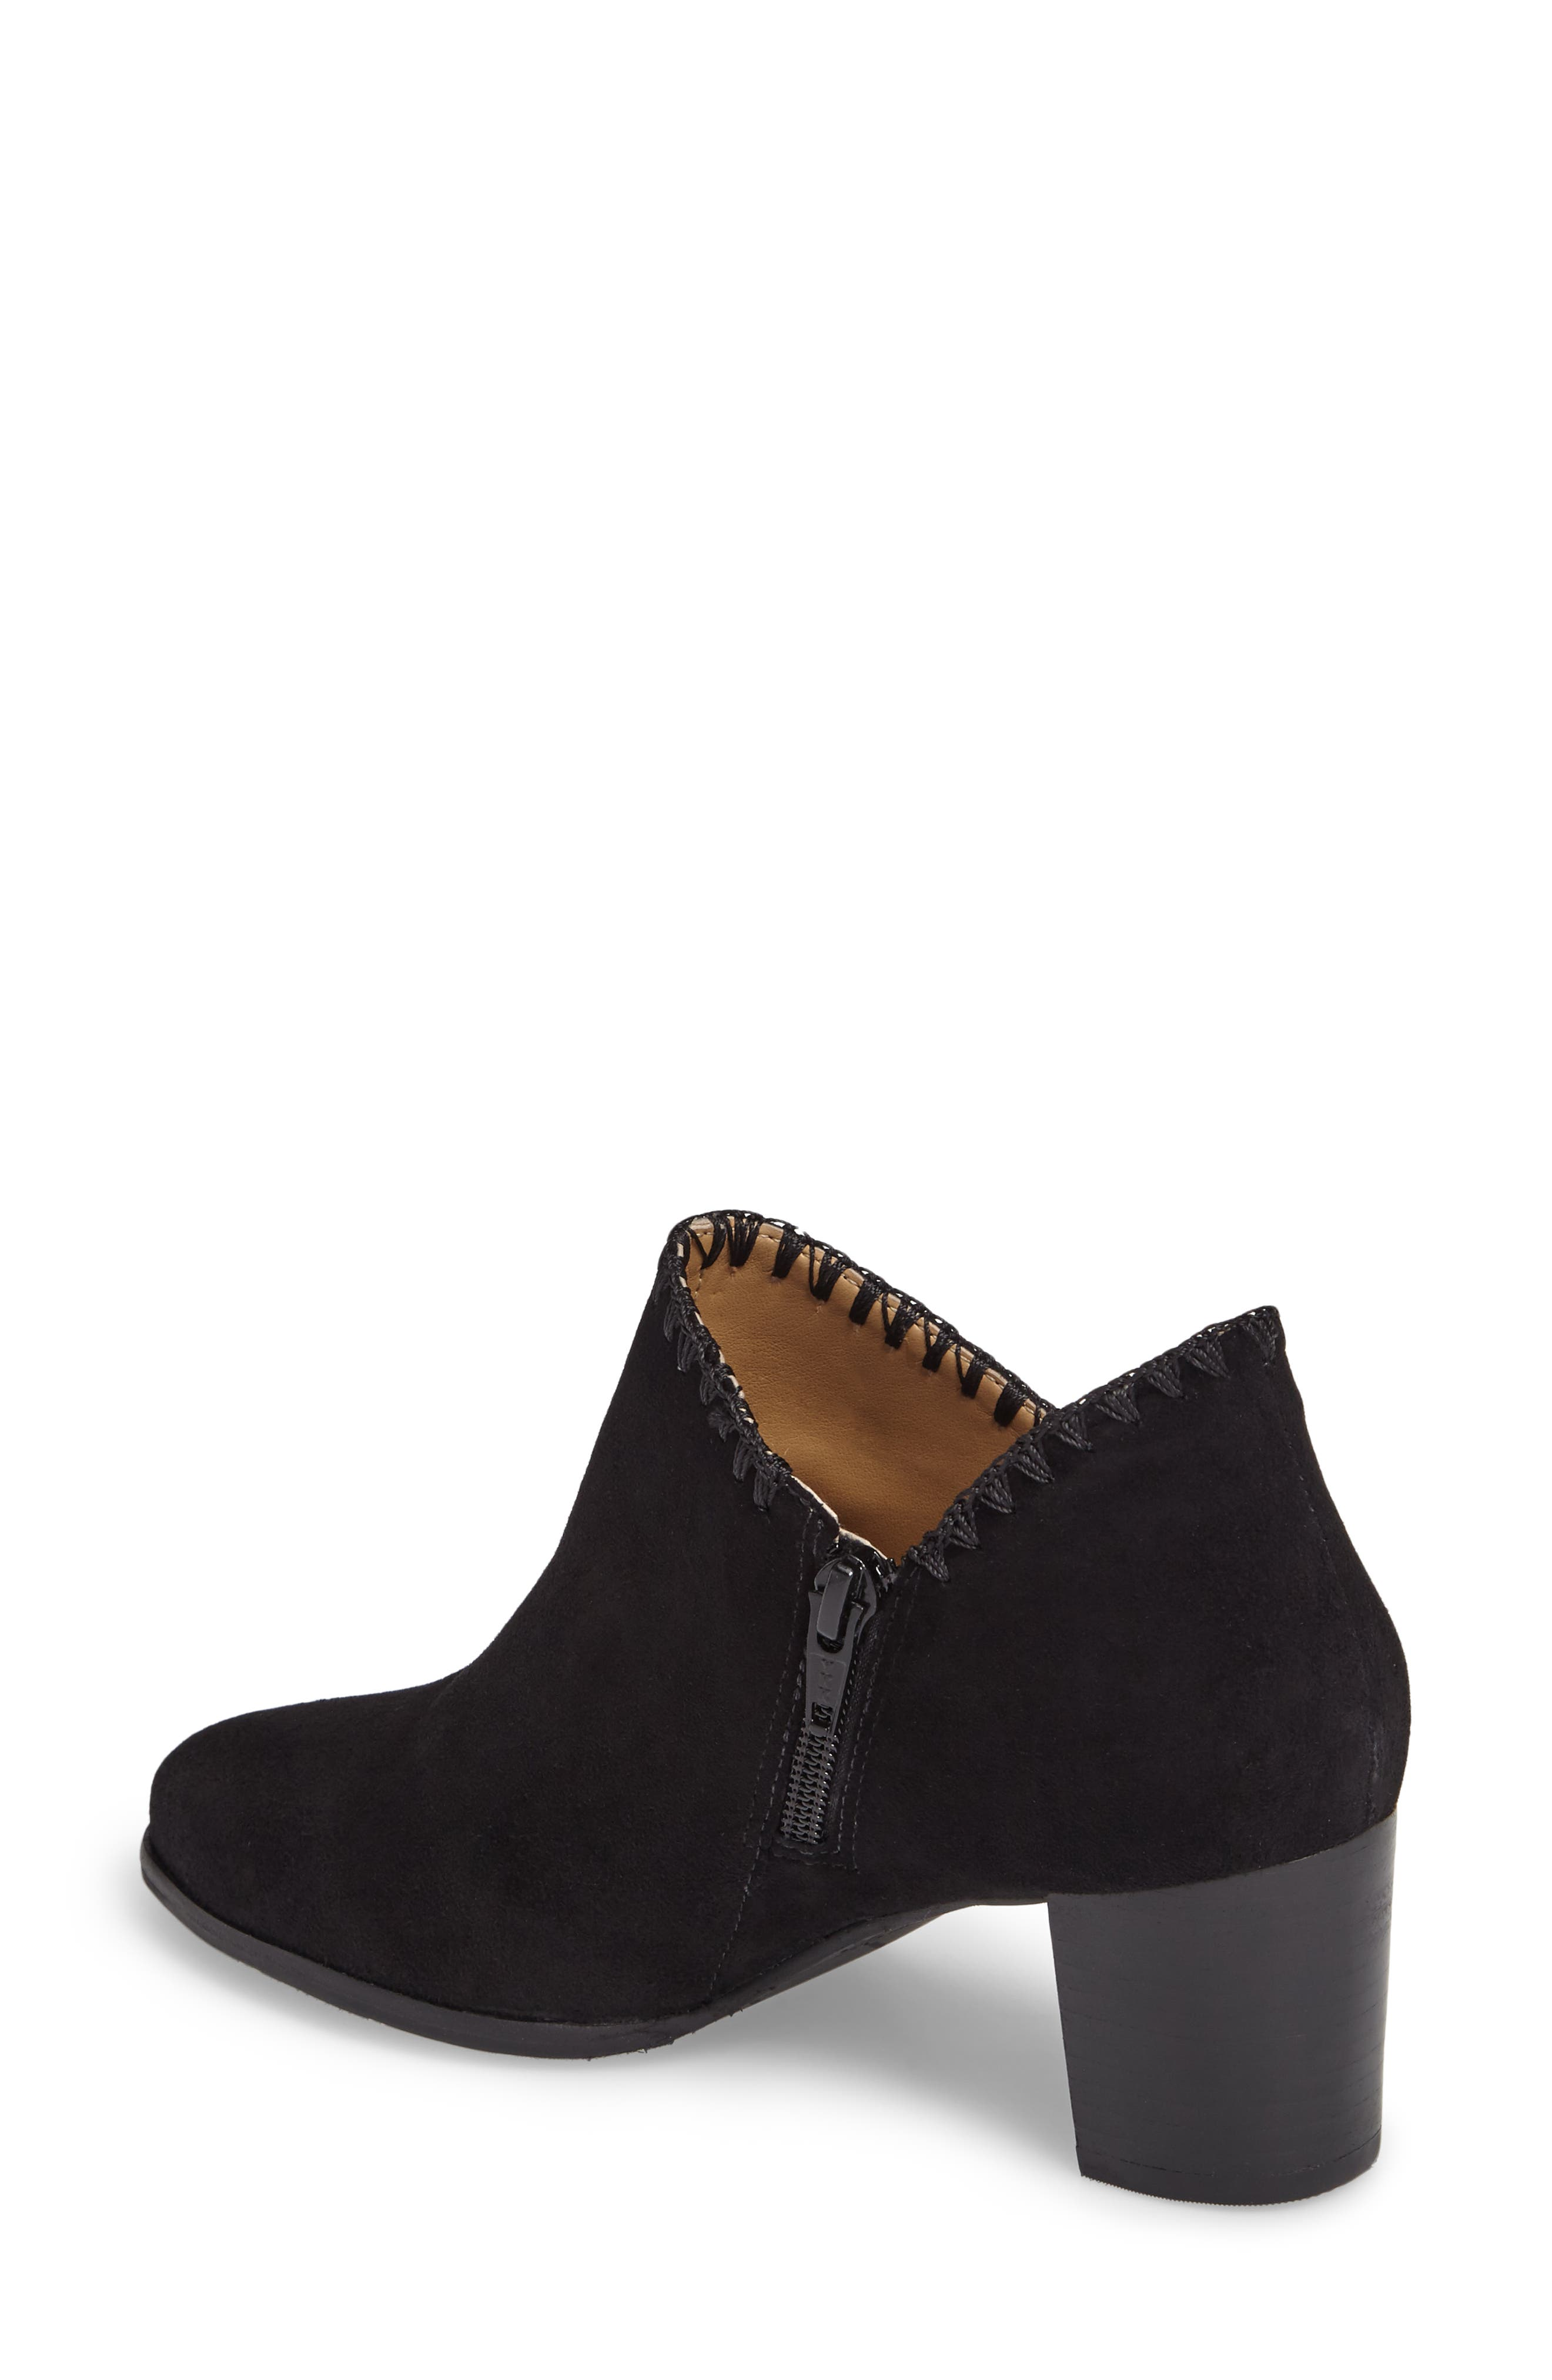 Marlow Bootie,                             Alternate thumbnail 8, color,